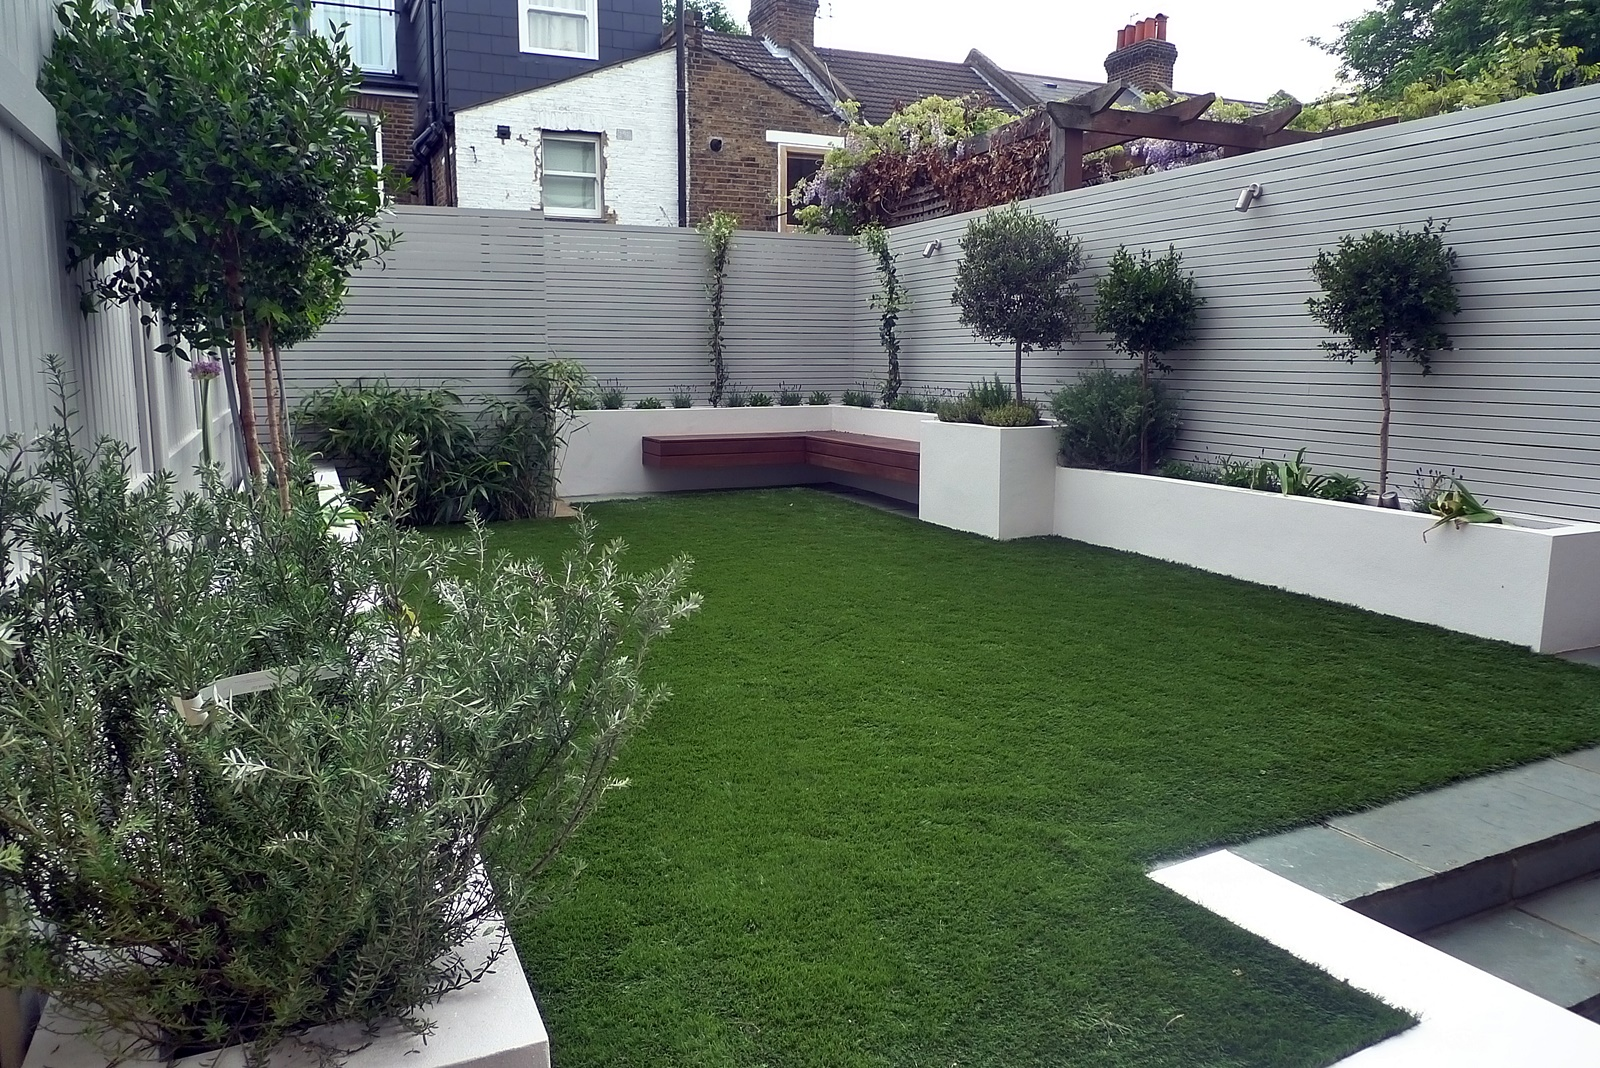 London garden blog london garden blog gardens from for Modern landscape ideas